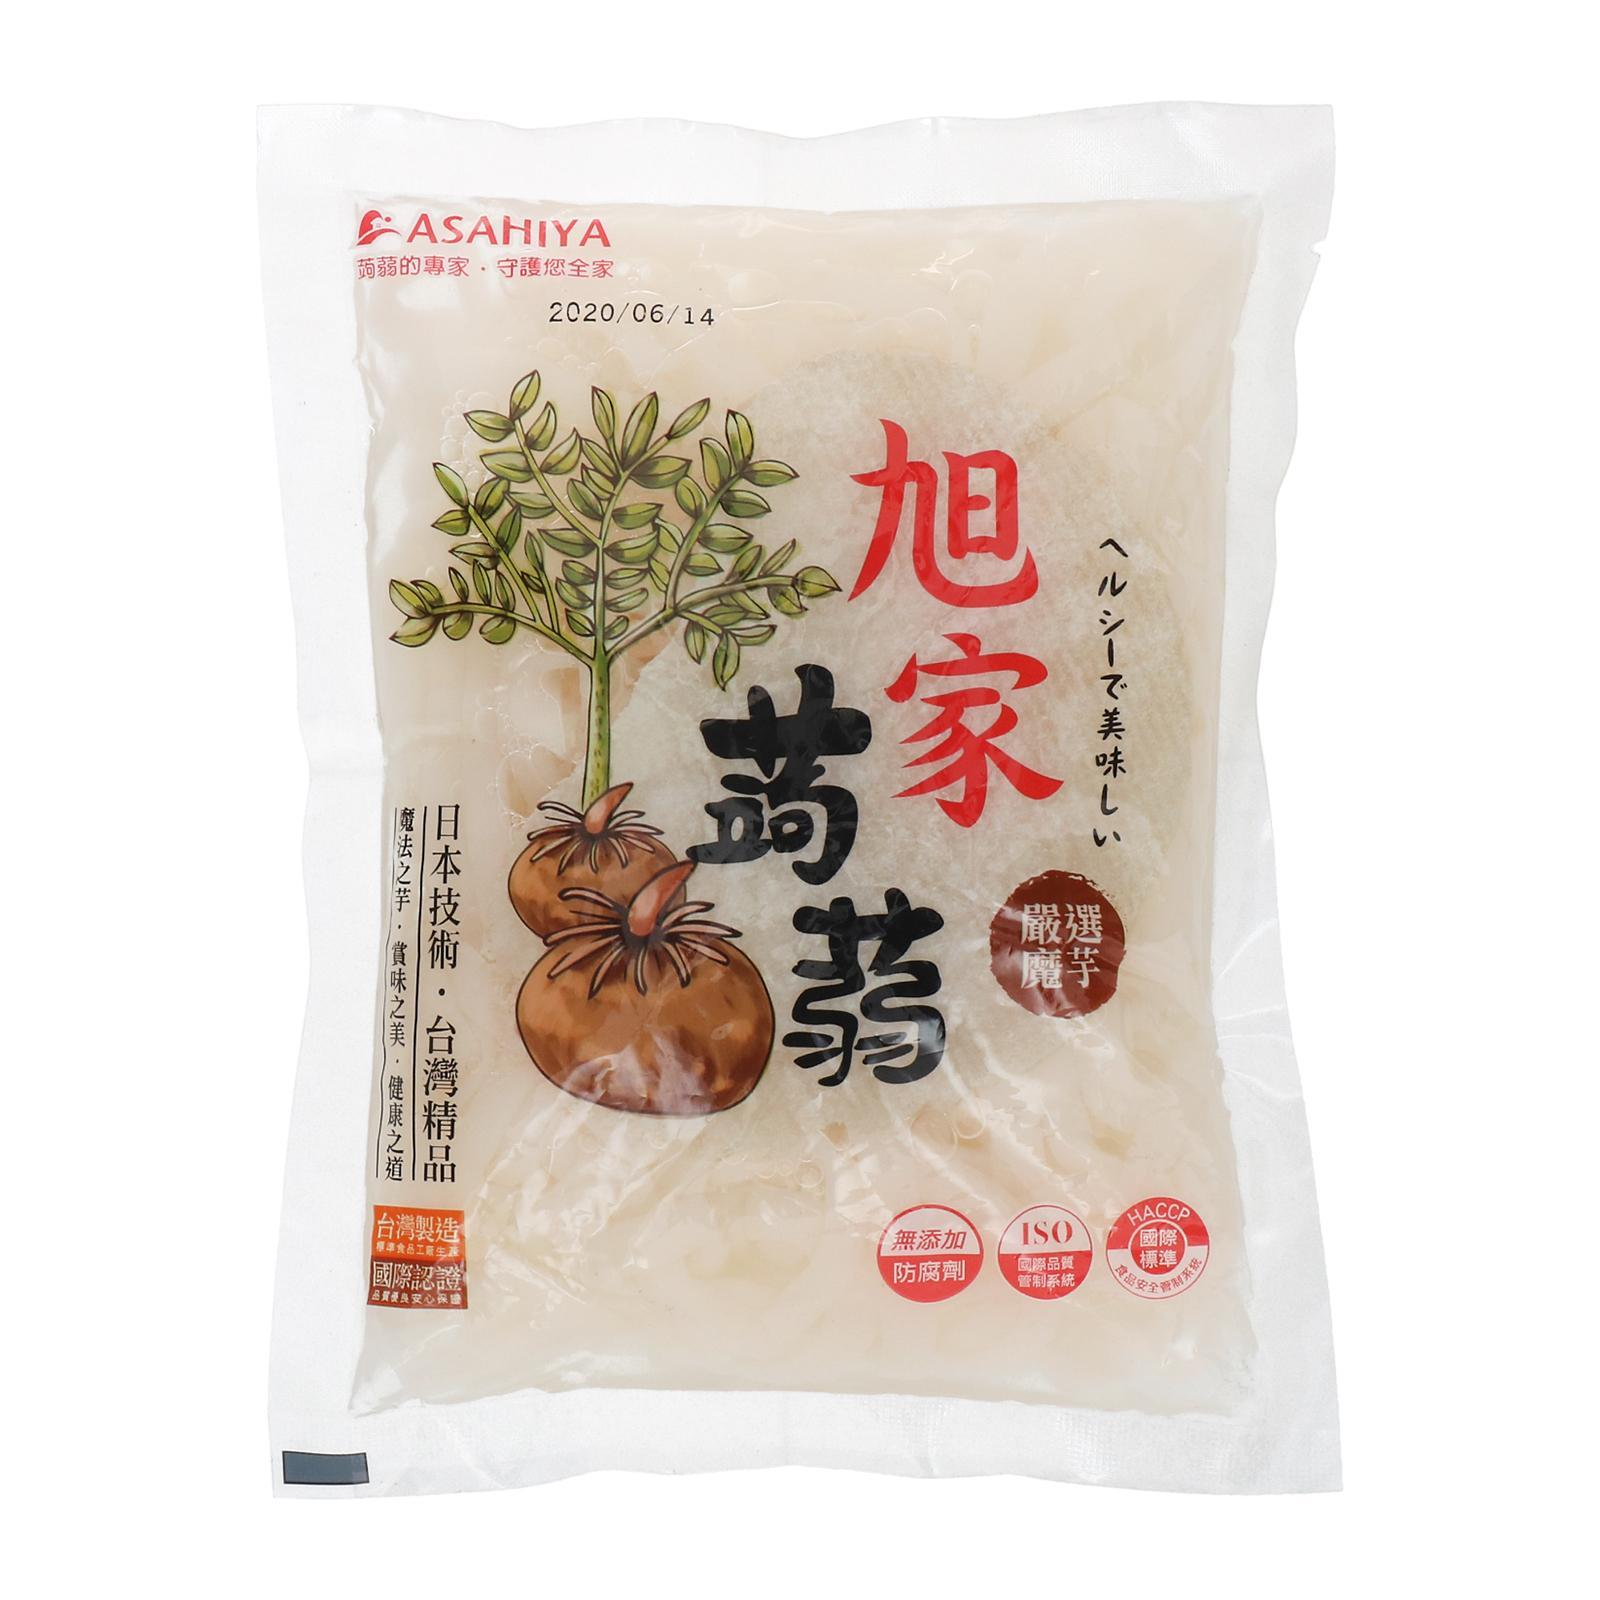 Asahiya Konjac Slim Kway Teow Noodles - By Food People